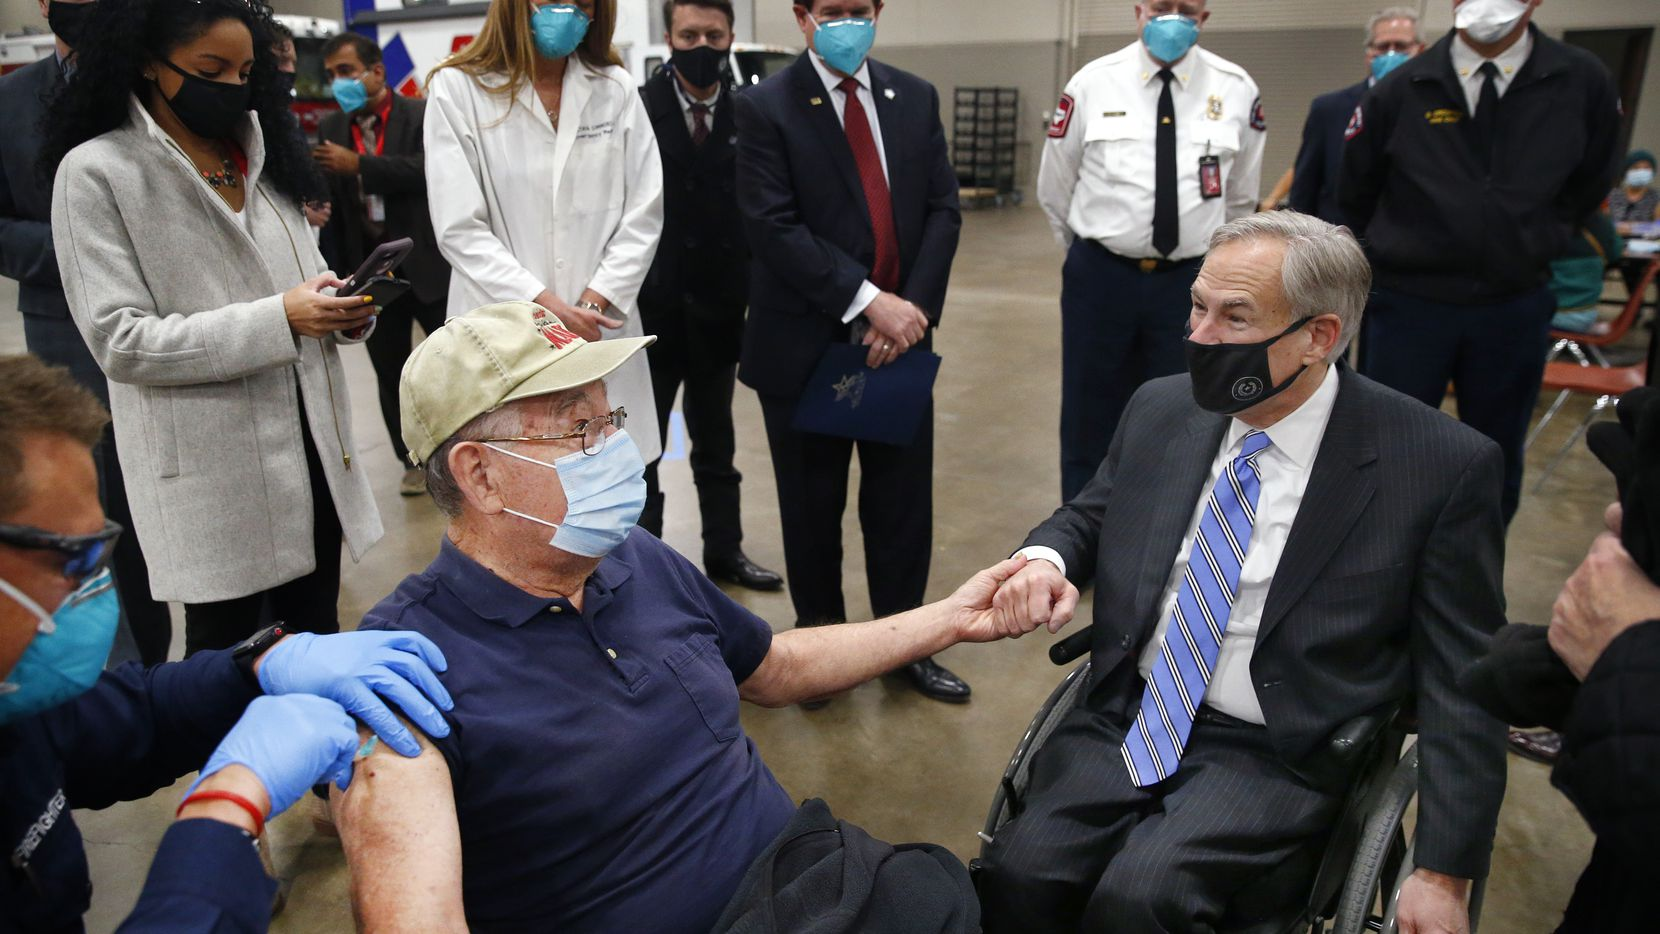 Texas Governor Greg Abbott (right) holds the hand of 86 yr-old Al Godfrey of Arlington as he receives his COVID-19 shot at a mass vaccination site inside Esports Stadium Arlington & Expo Center in Arlington, Texas, Monday, January 11, 2021. Earlier Abbott met with local and state officials for a briefing and then provided an update on COVID-19 vaccine efforts in Texas. (Tom Fox/The Dallas Morning News)